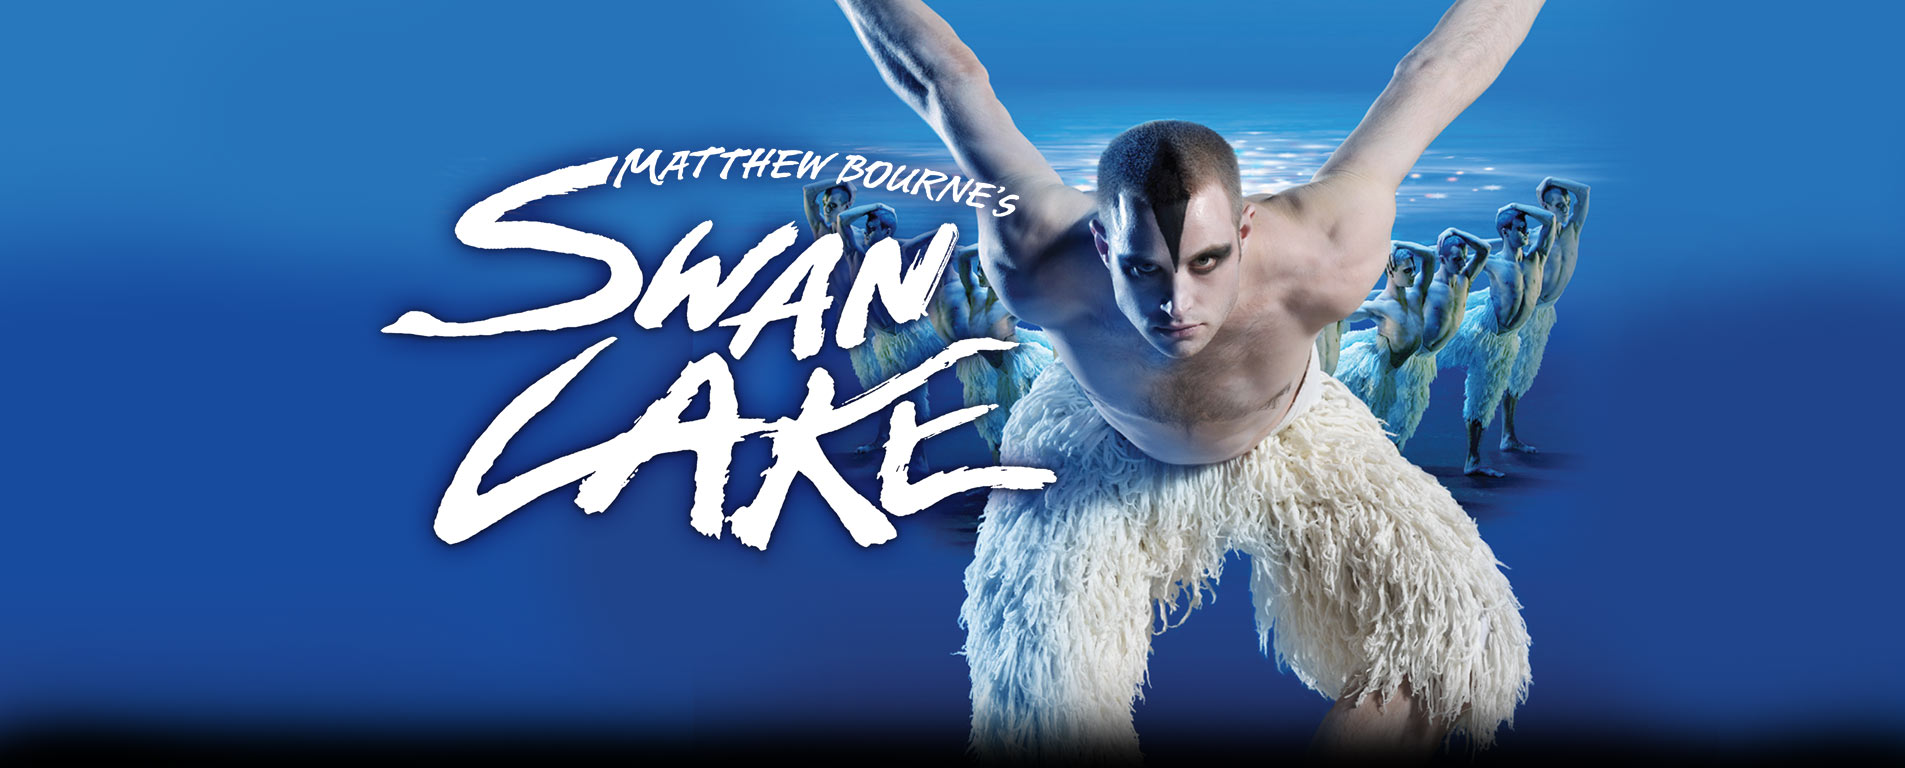 Matthew Bourne's Swan Lake, 2012